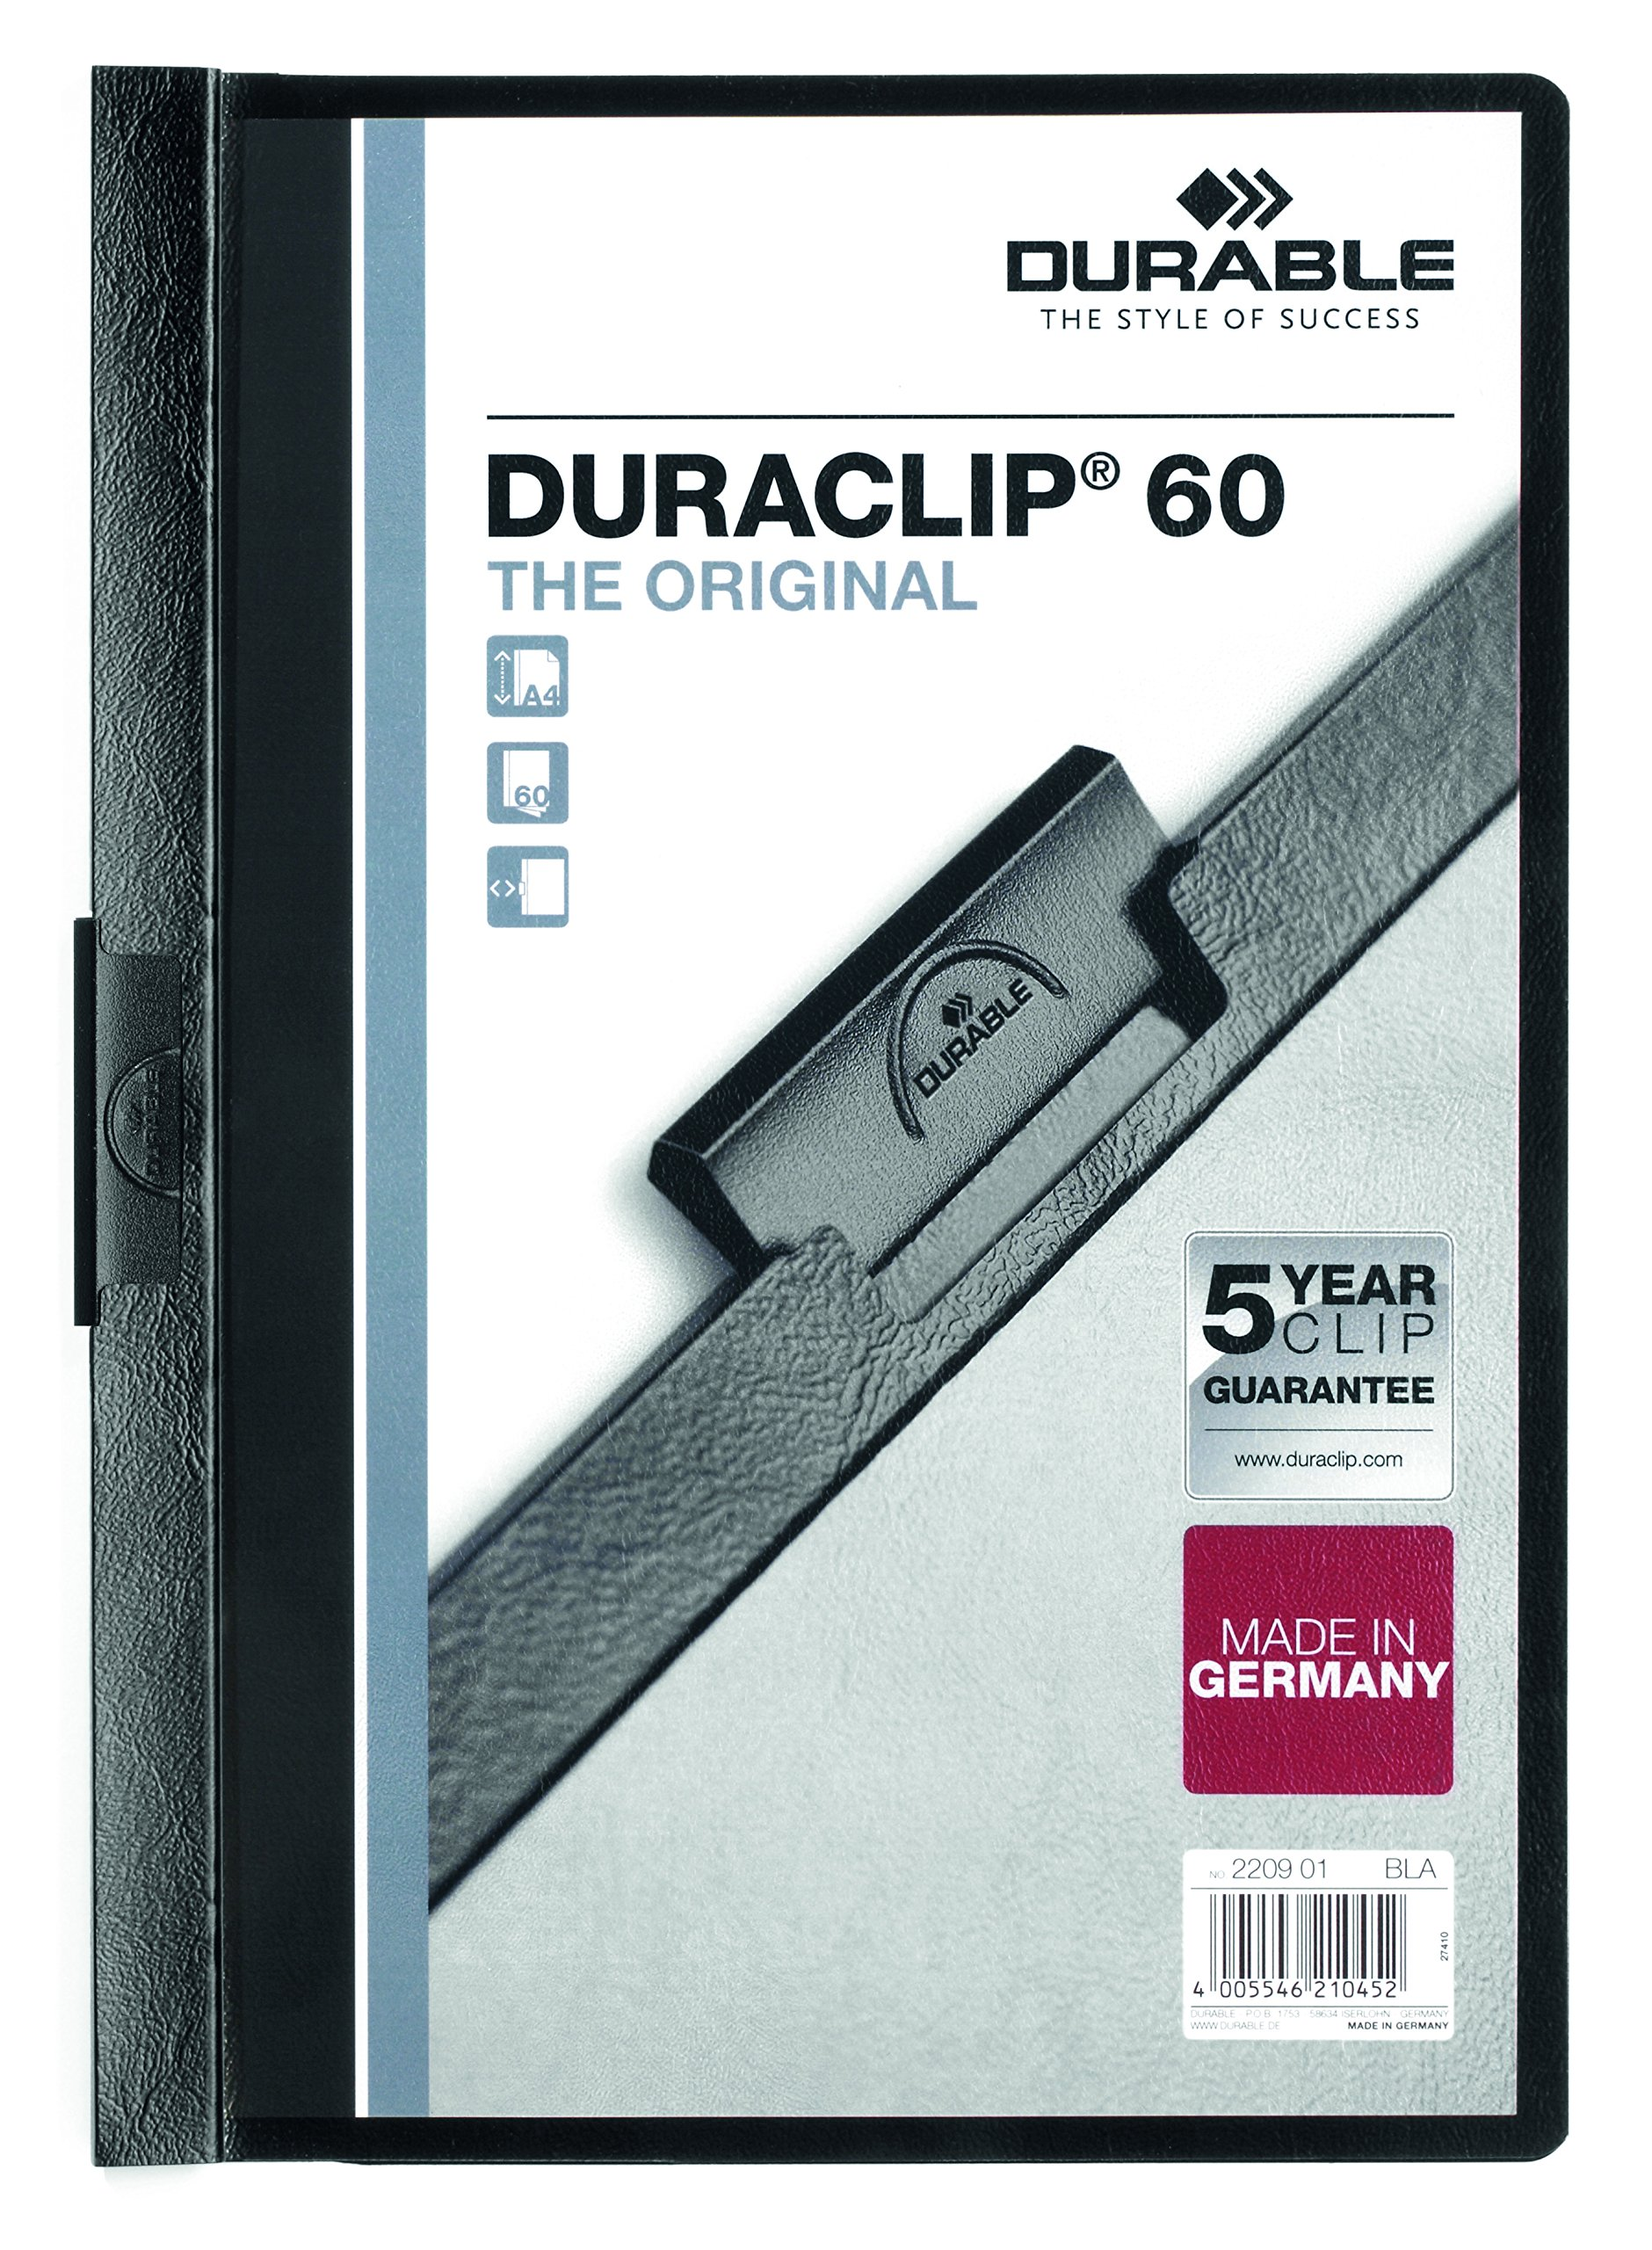 Durable Vinyl DURACLIP Report Cover, Letter, Holds up to 60 Pages, Clear/Black, 25 per Box (221401)